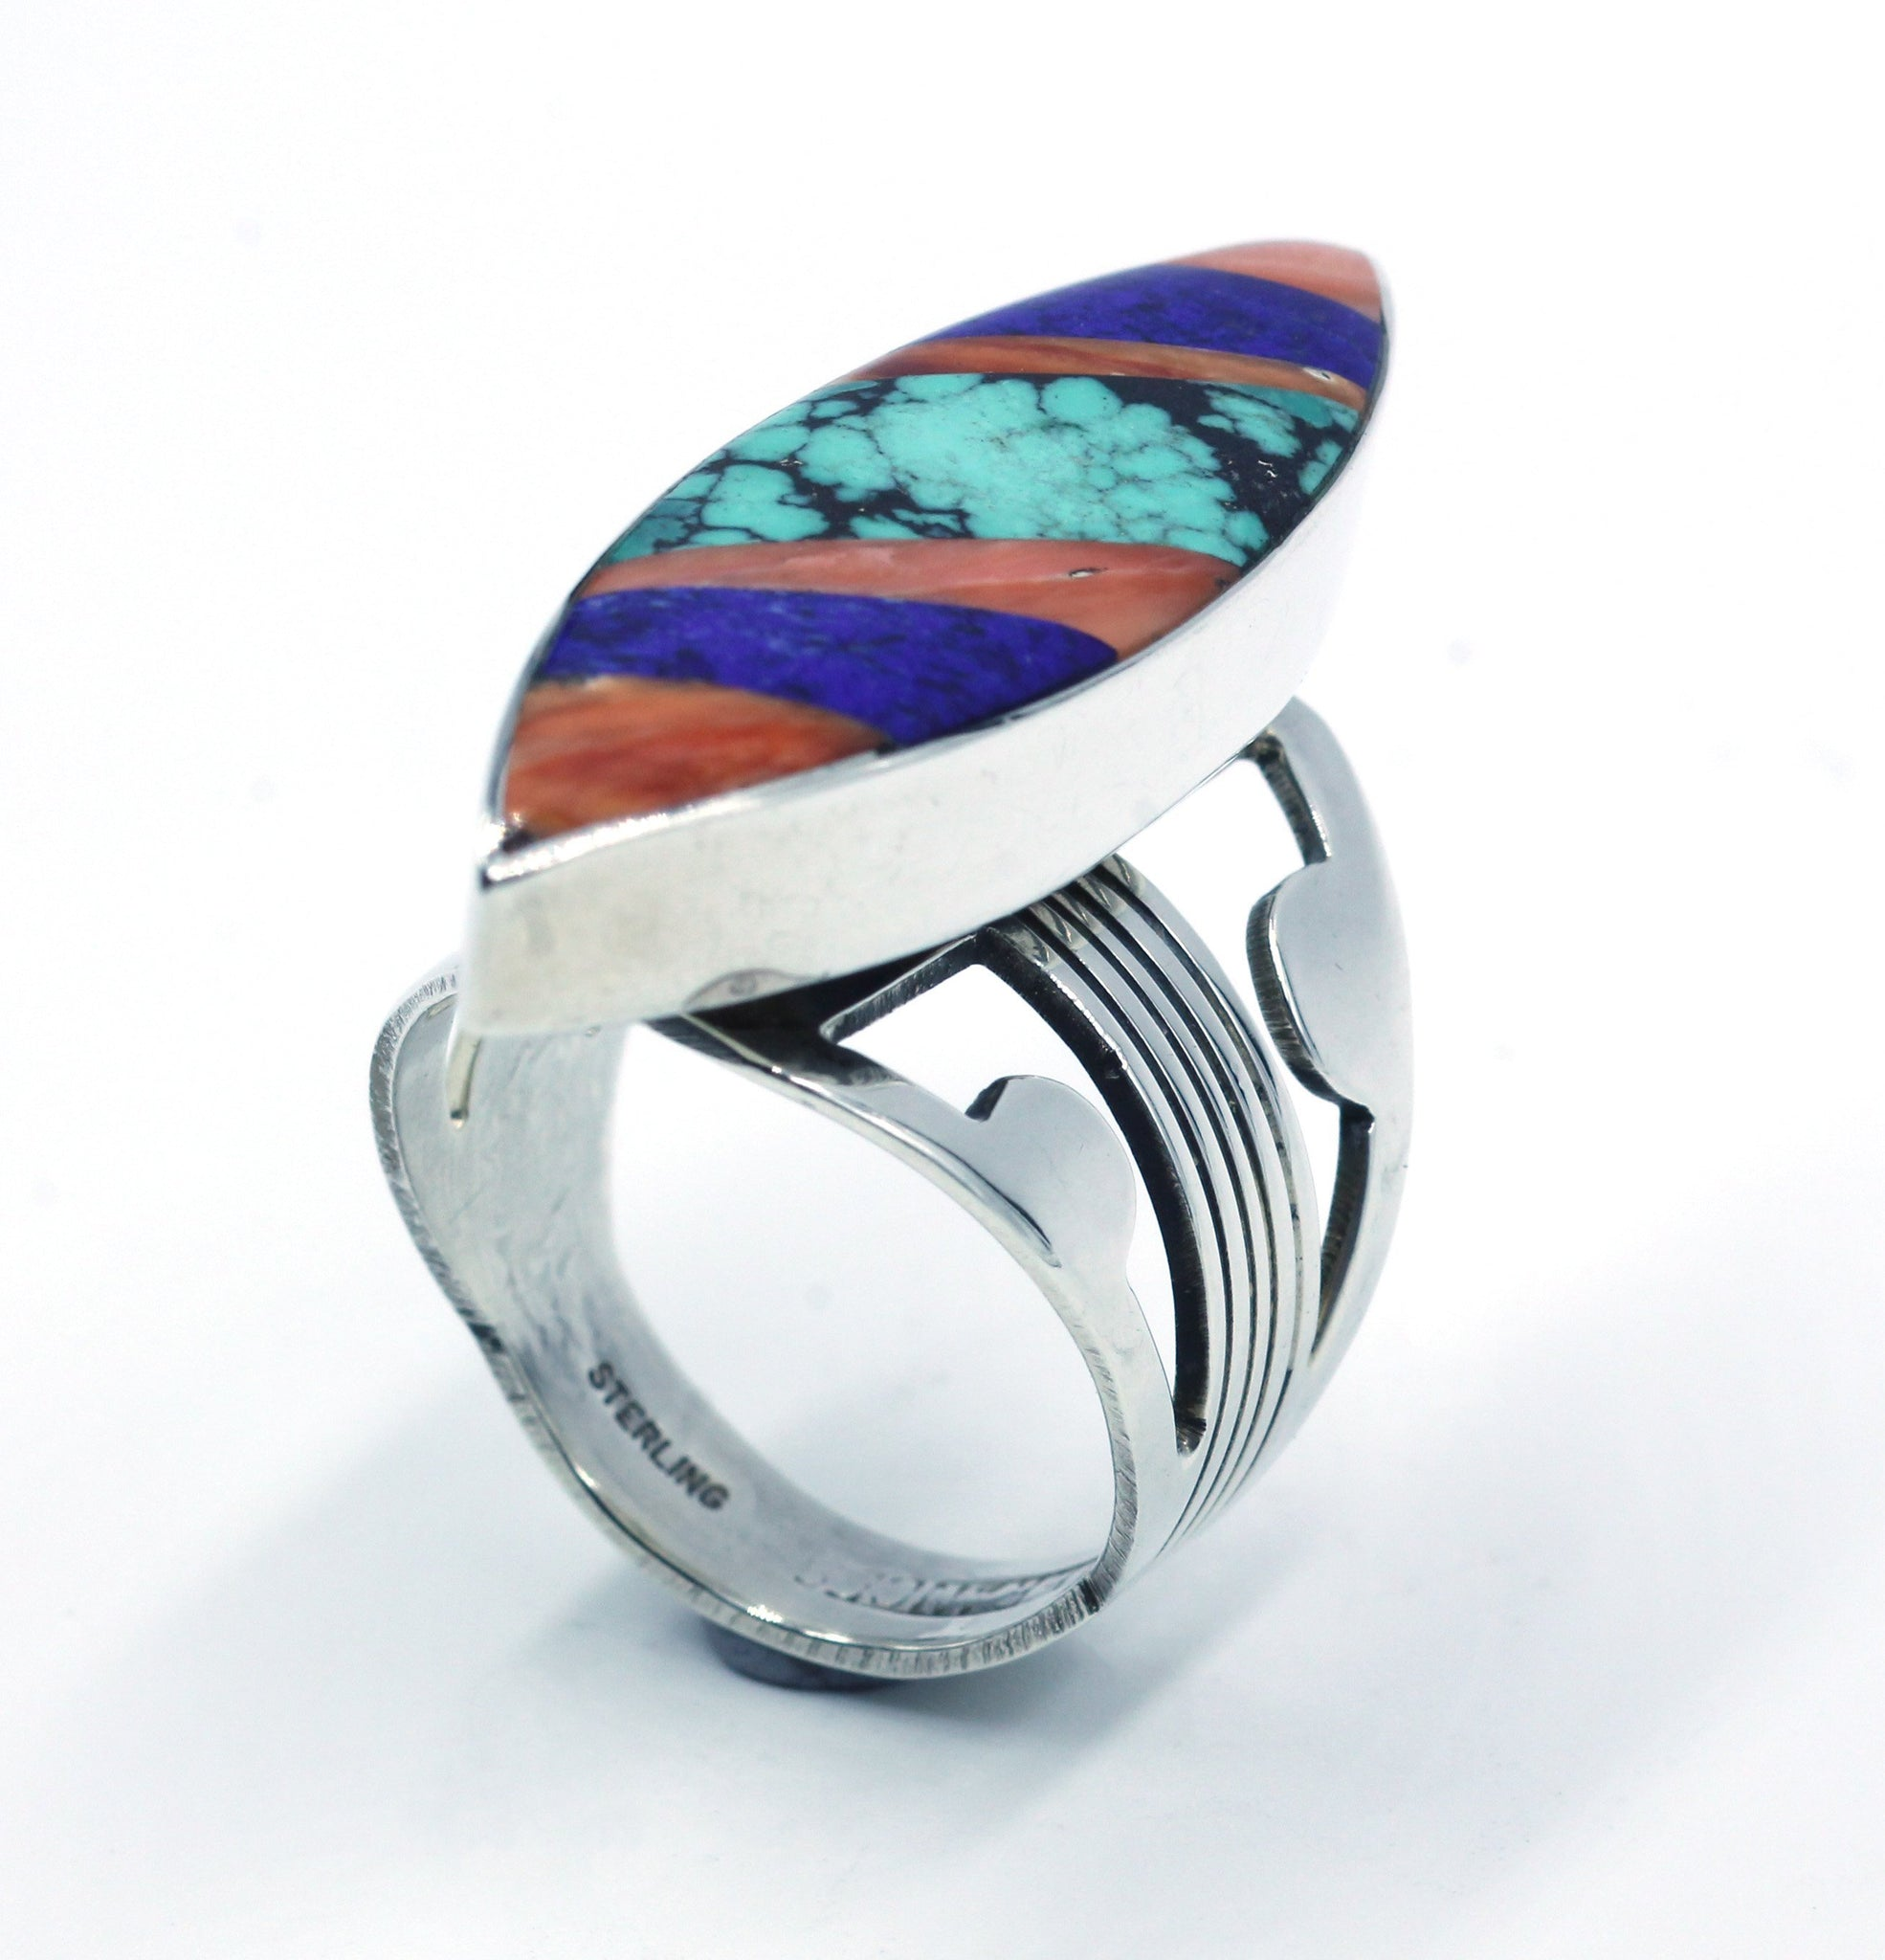 Vintage Native American Zuni Sterling Silver Inlaid Ring, SOLD